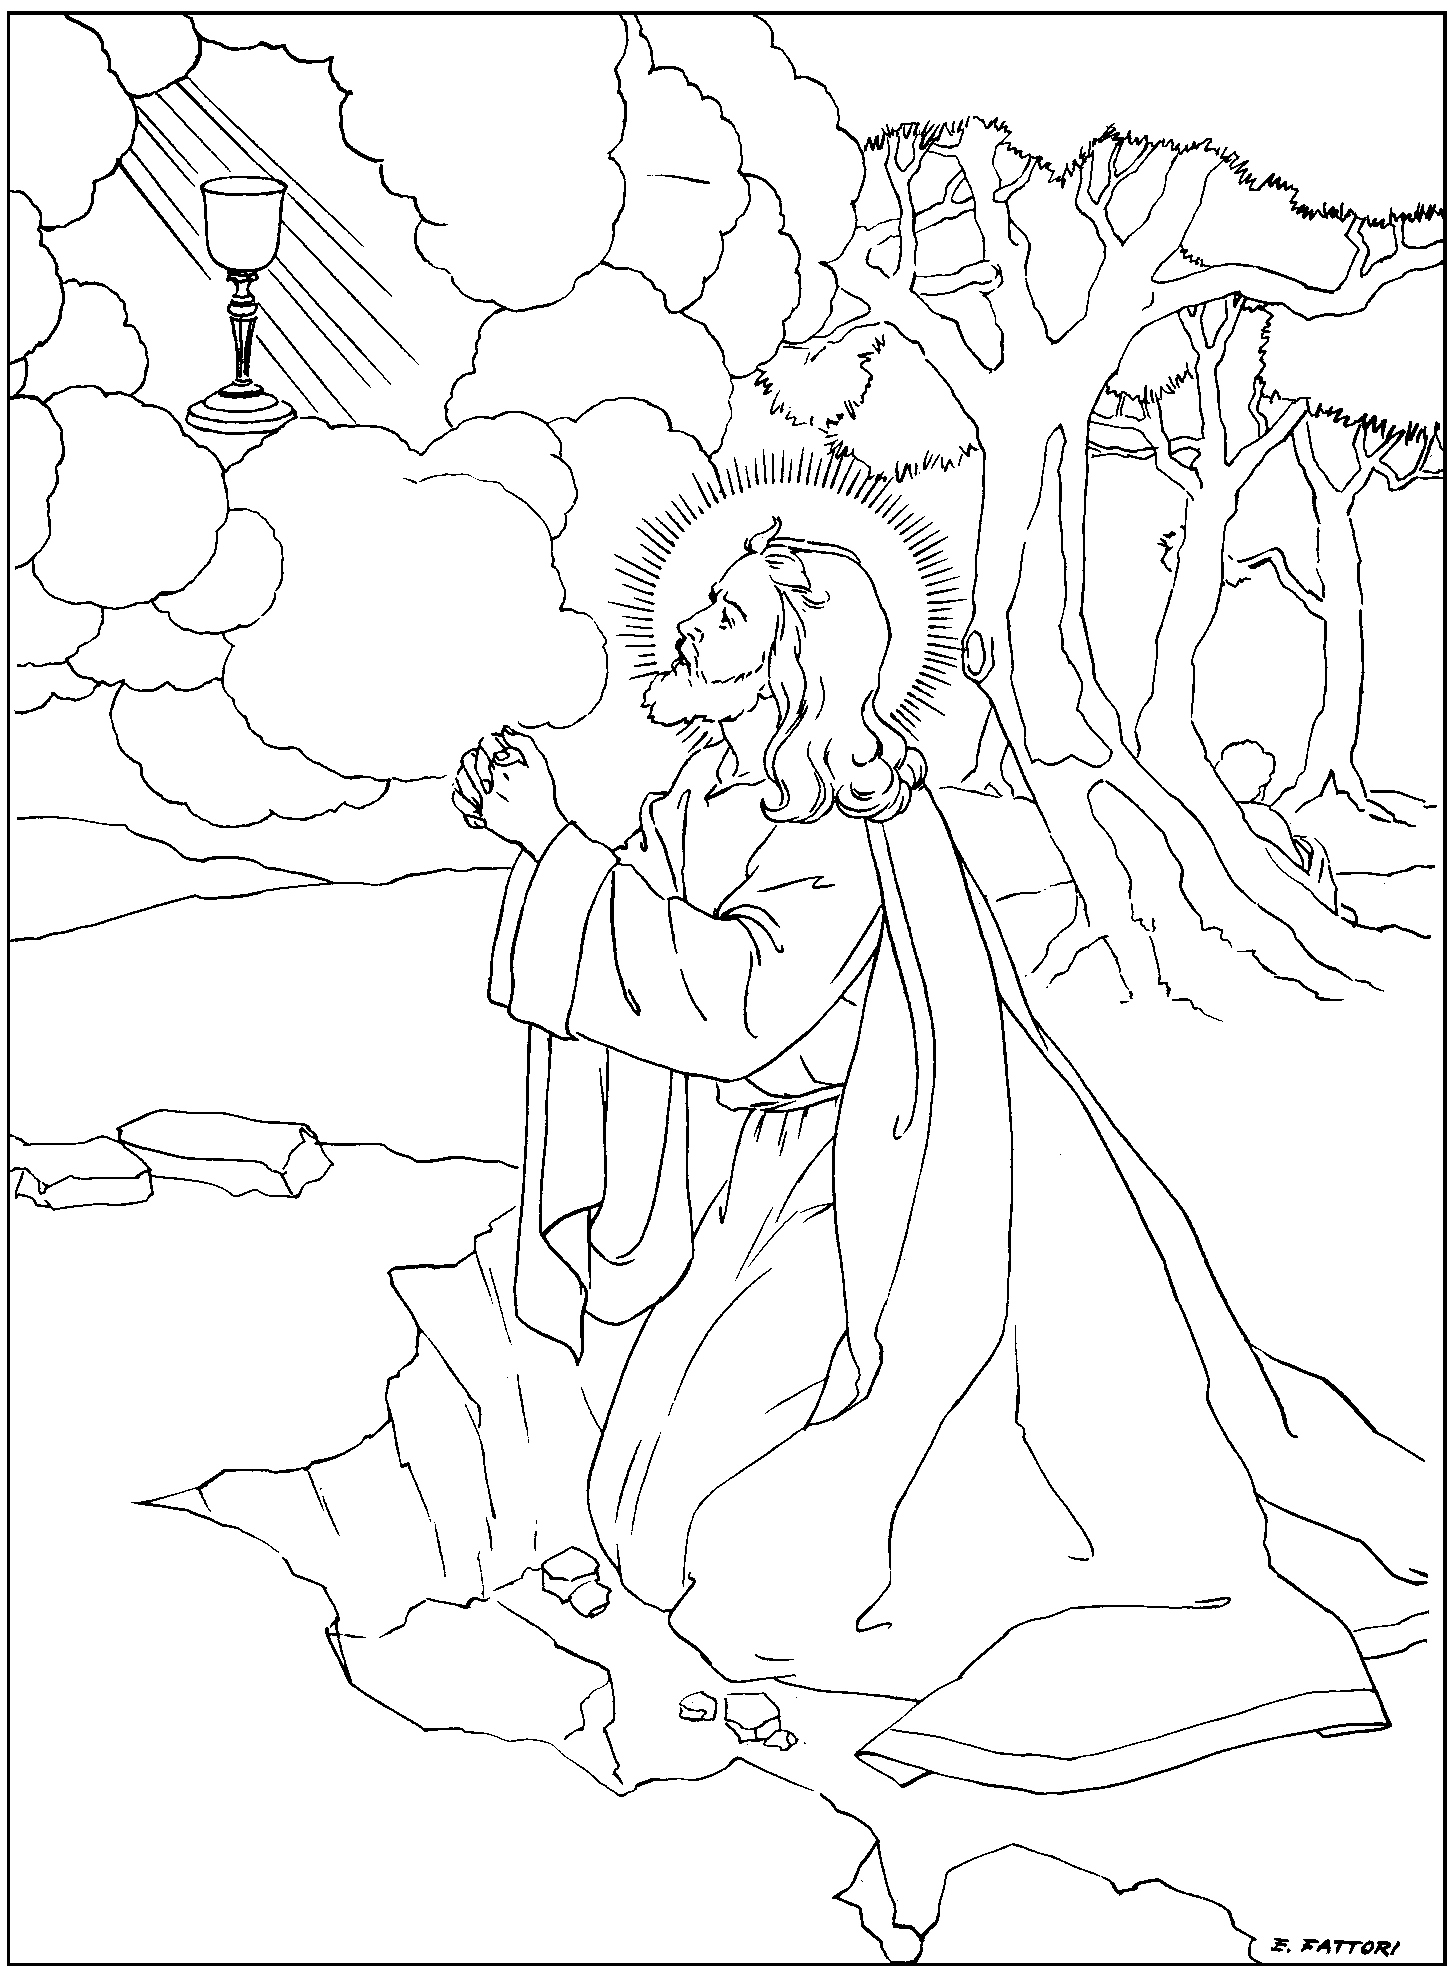 S ateri coloring also saint benedict medal additionally 44ee459db0dffbb02cb6464c572637ba  kids coloring coloring pages moreover  in addition DSCN1836 additionally saint augustine additionally miraculousmedal11 moreover agnes two besides saint francis of assisi coloring page additionally St Justin edited 1 likewise saint paul knocked down. on printable coloring pages of saints saint benedict